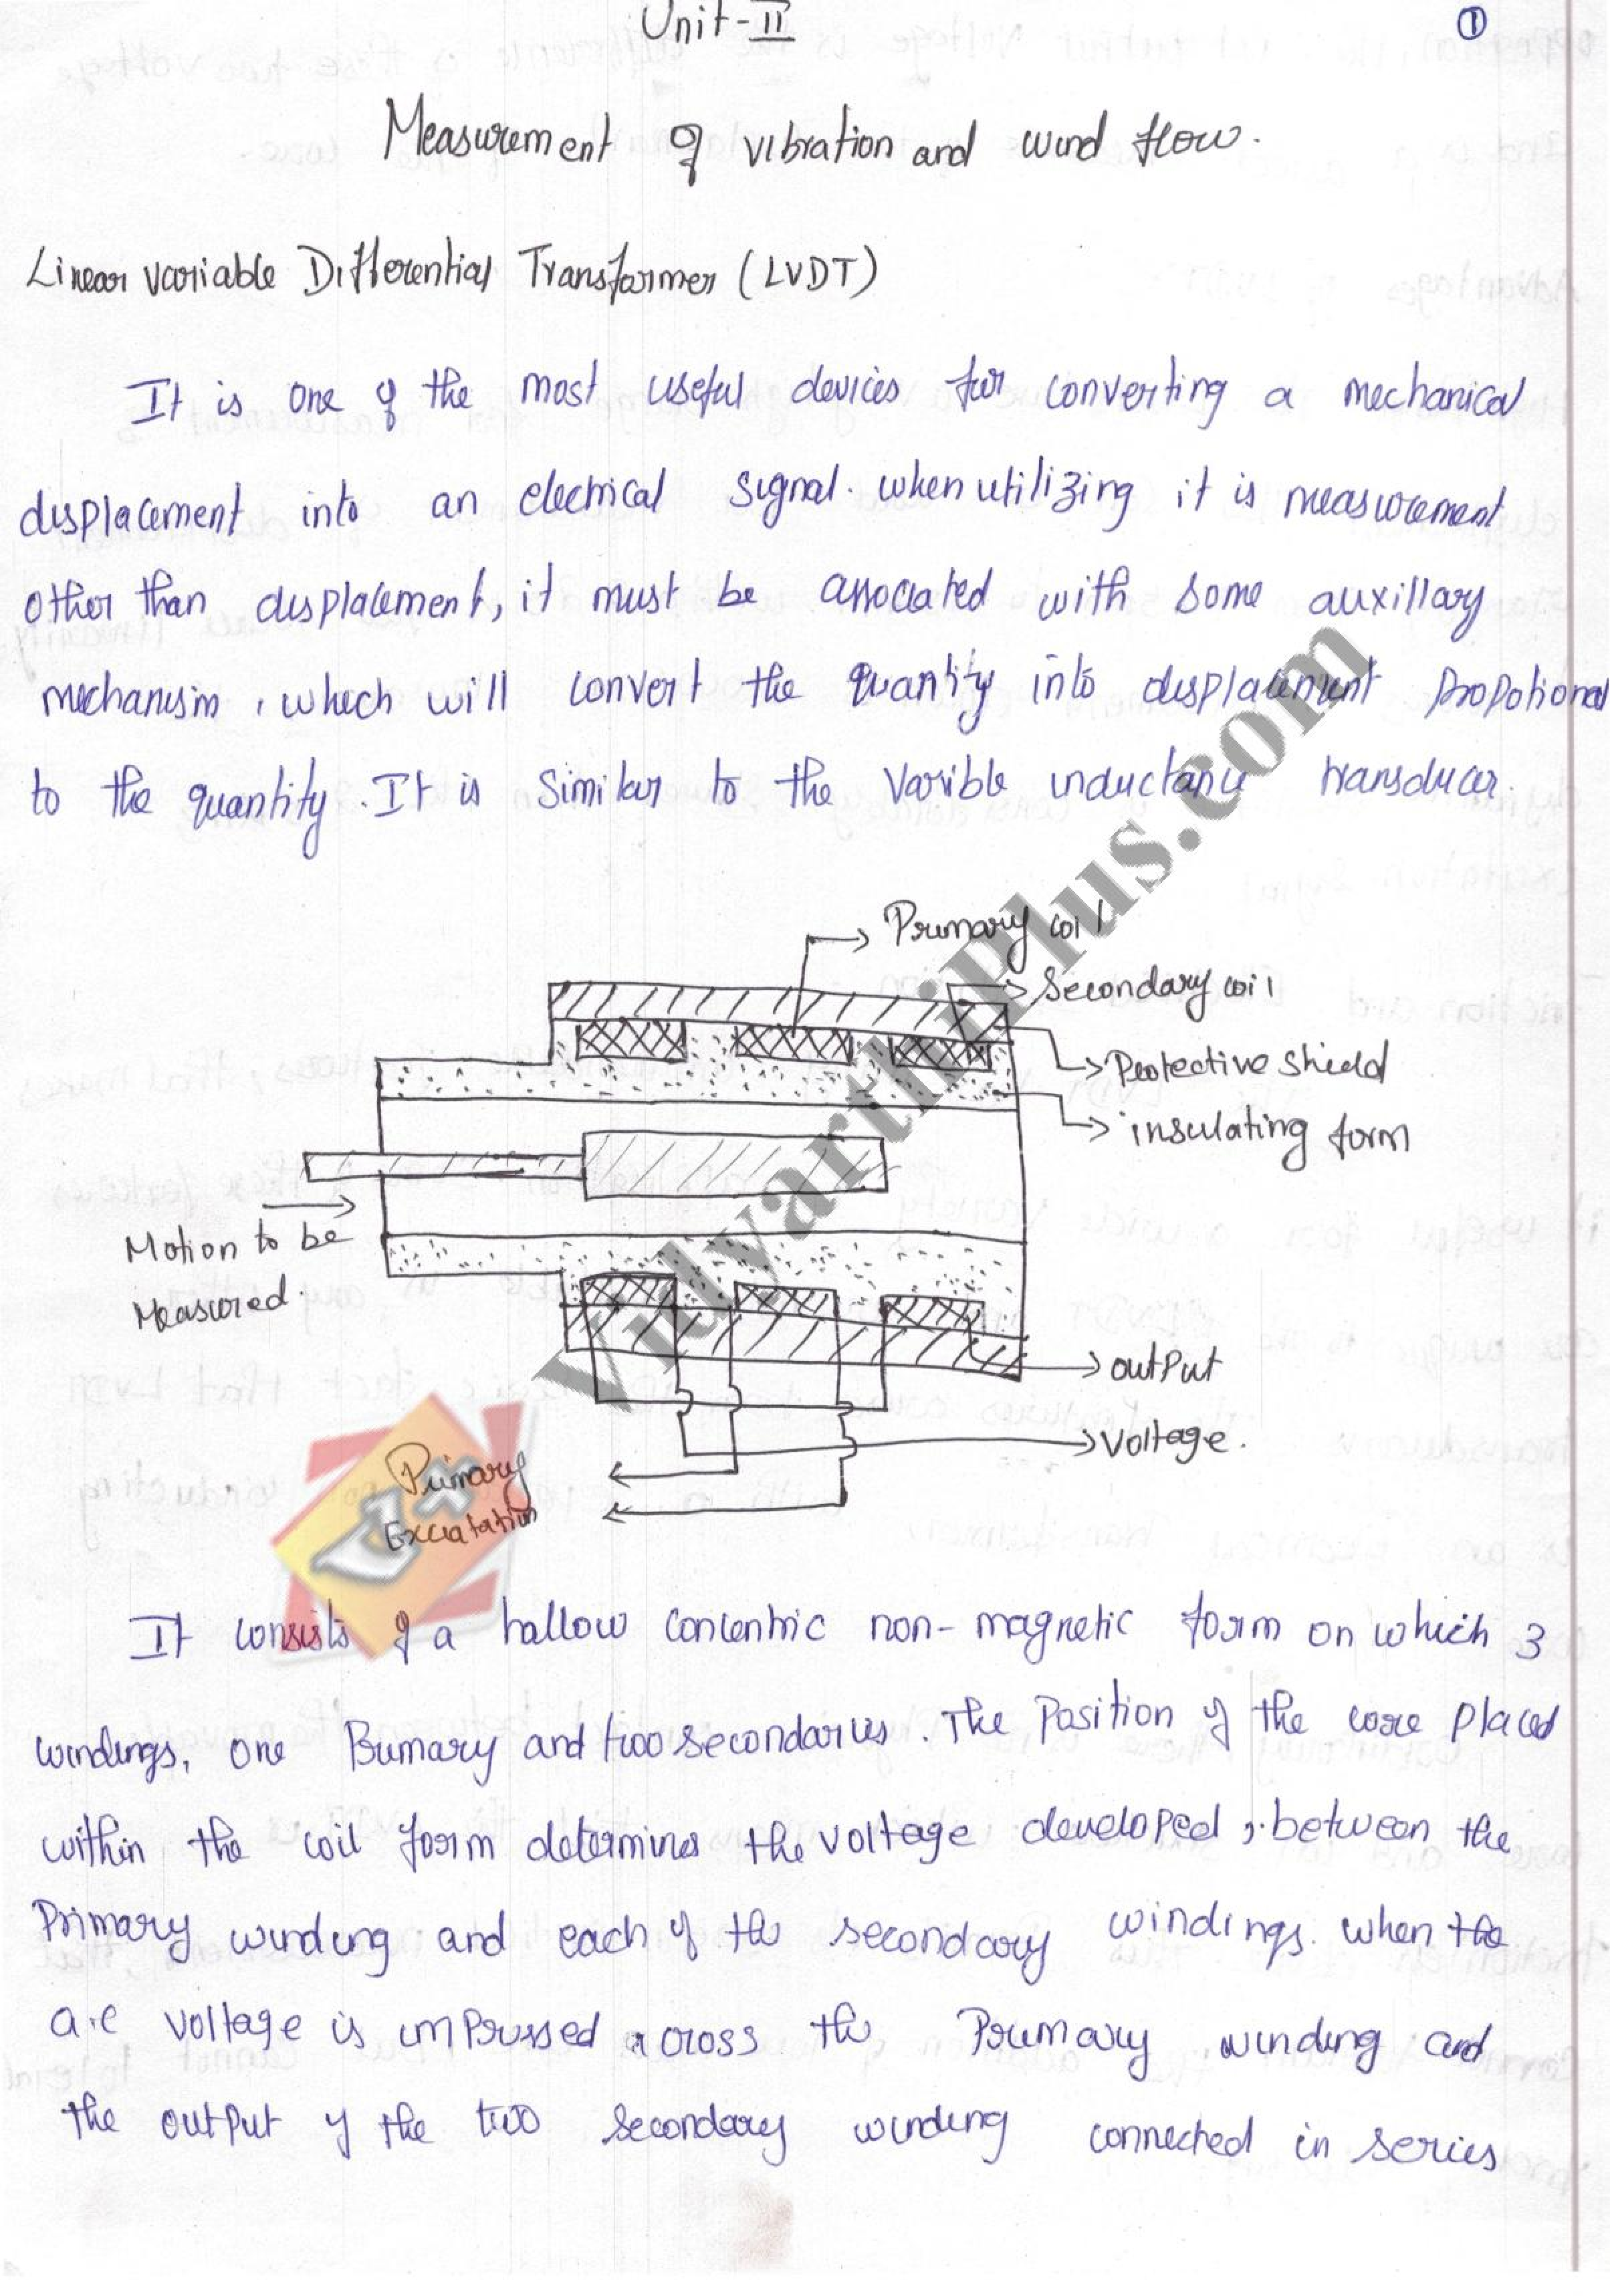 Experimental Techniques And Instrumentation Premium Lecture Notes - Buvana Edition